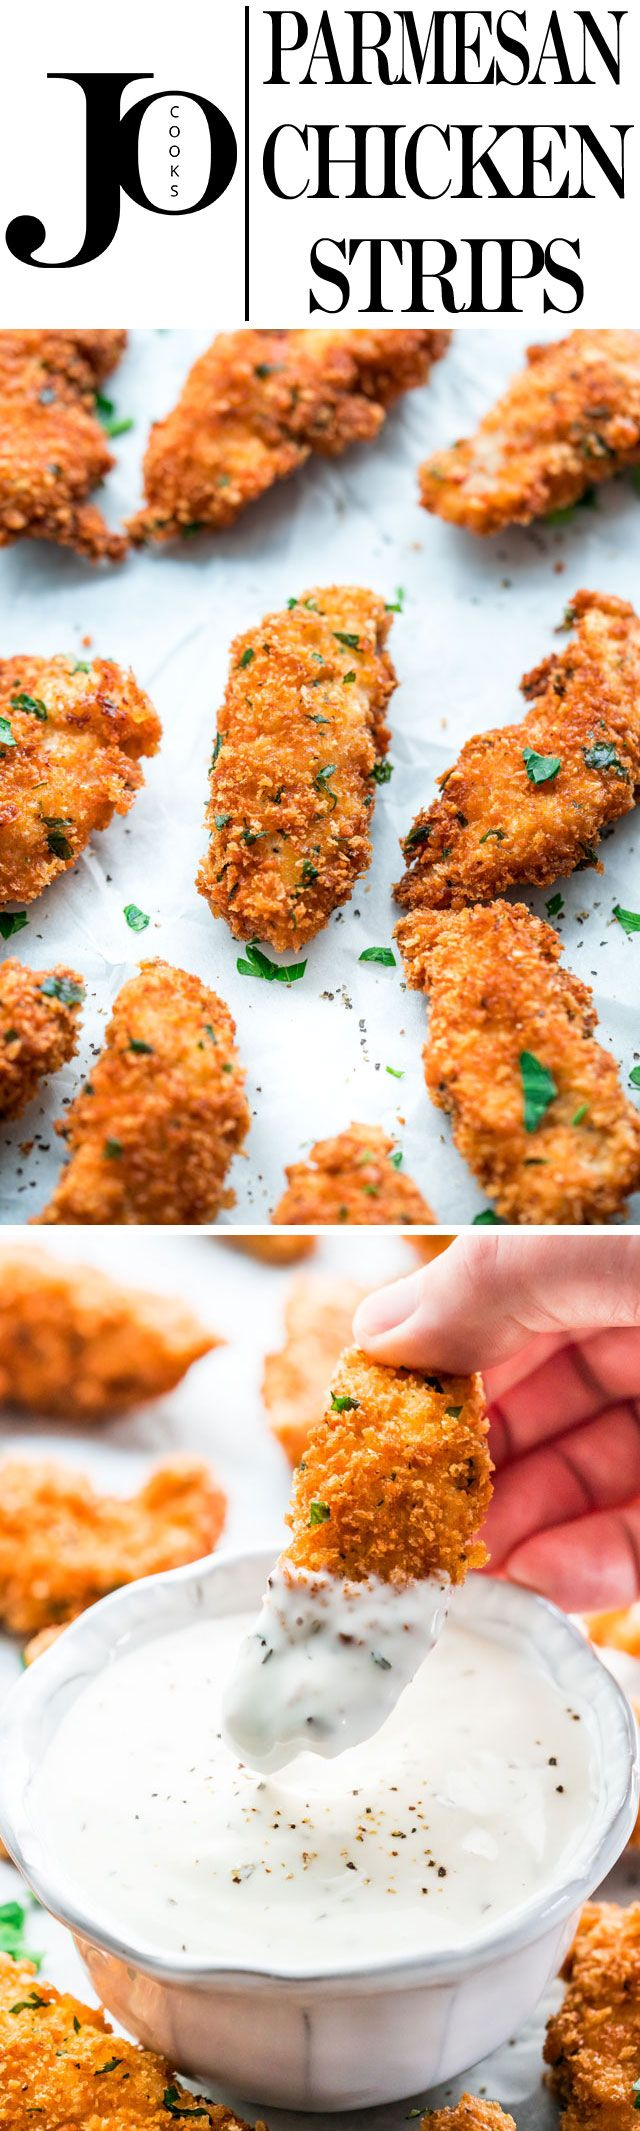 These Parmesan Chicken Strips with Ranch Dressing are extra crispy and super delicious. Say goodbye to restaurant chicken strips and make these at home. They're insanely delicious and they'll disappear from the table in no time!